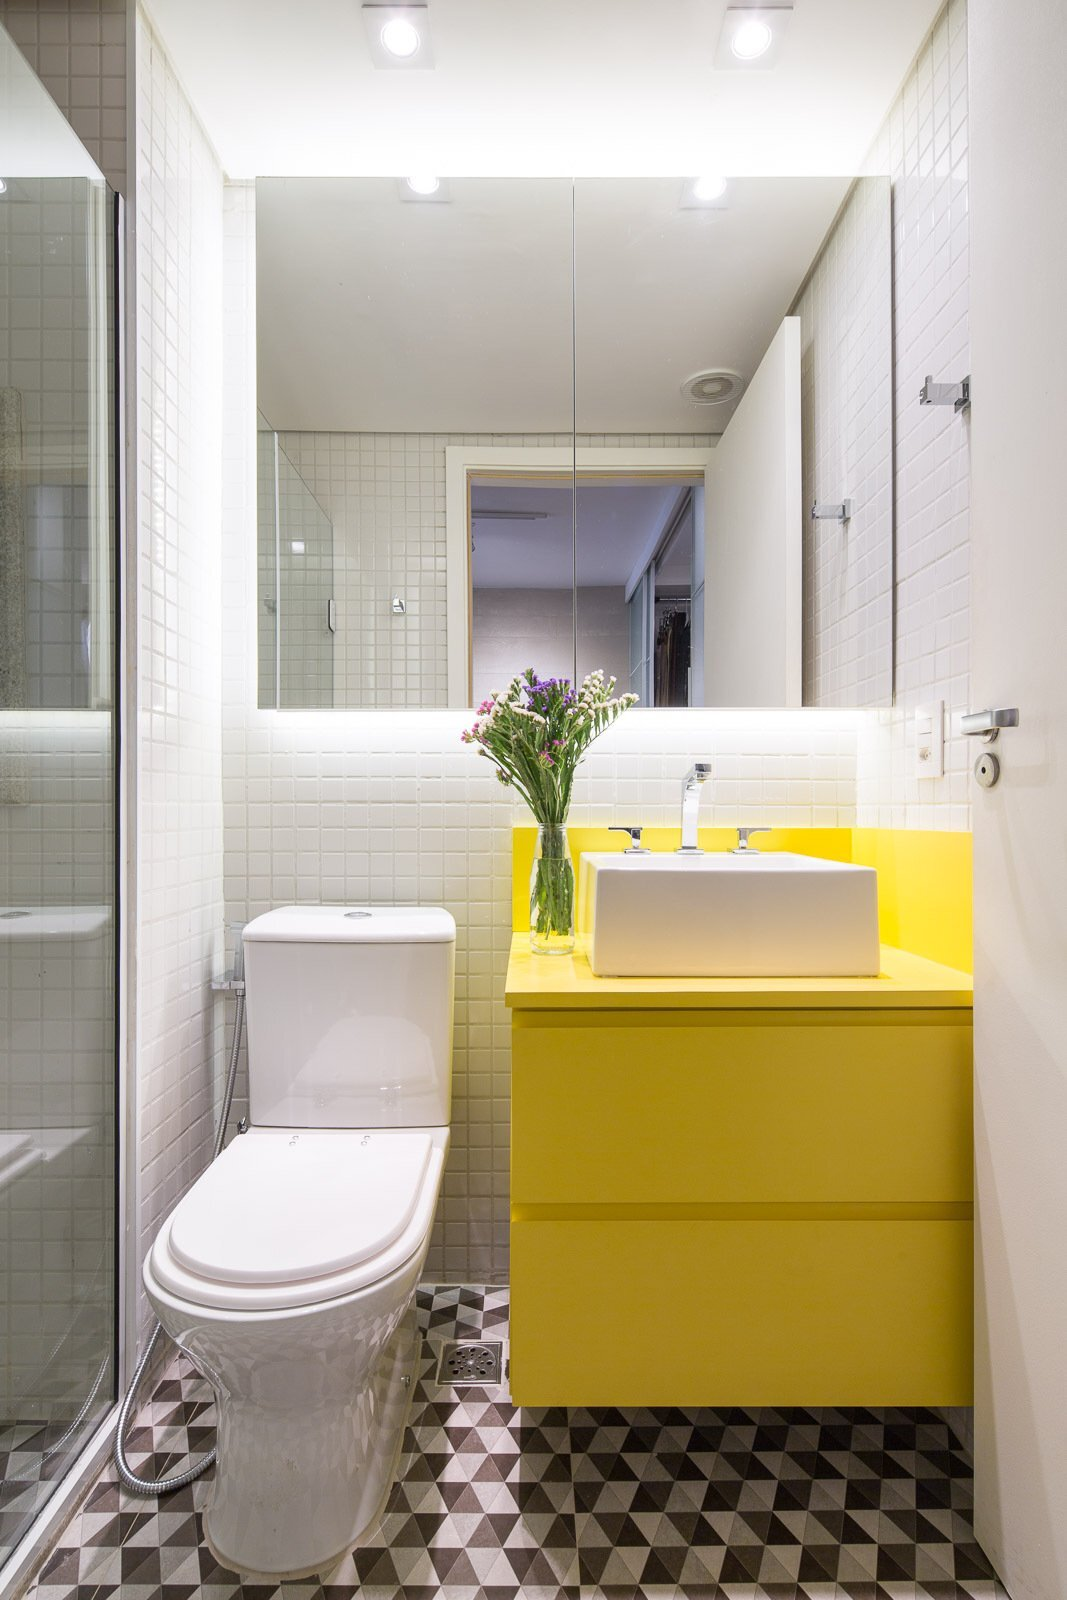 Trama Apartment - Small Apartment - Semerene Arquitetura Interior - Brazil - Bathroom - Humble Homes